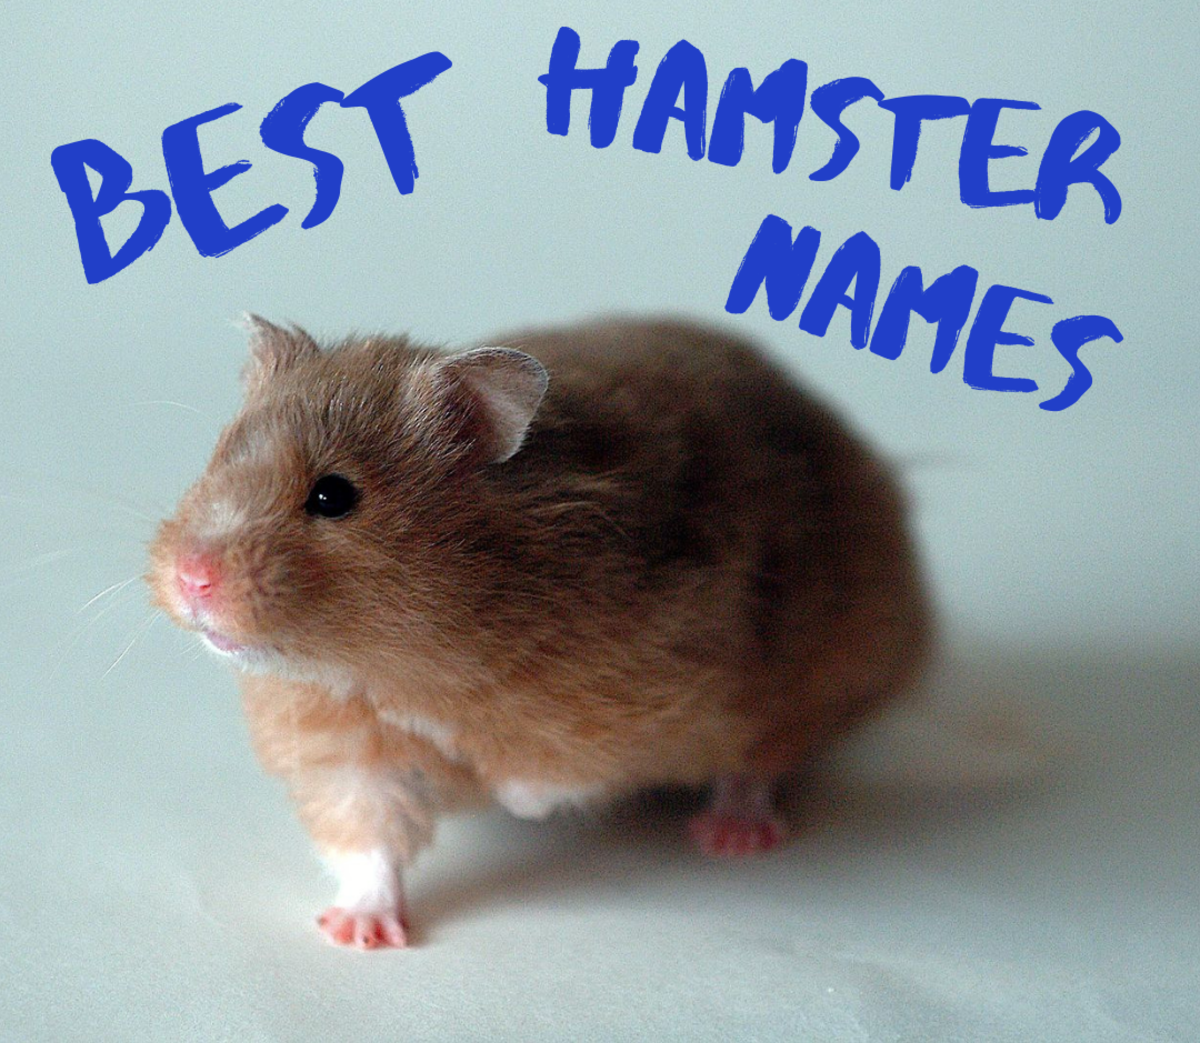 Need an awesome name for your adorable hamster? How about Chubby Cheeks, Simon, Cottonball, or Pepper? Get lots more ideas in this article.